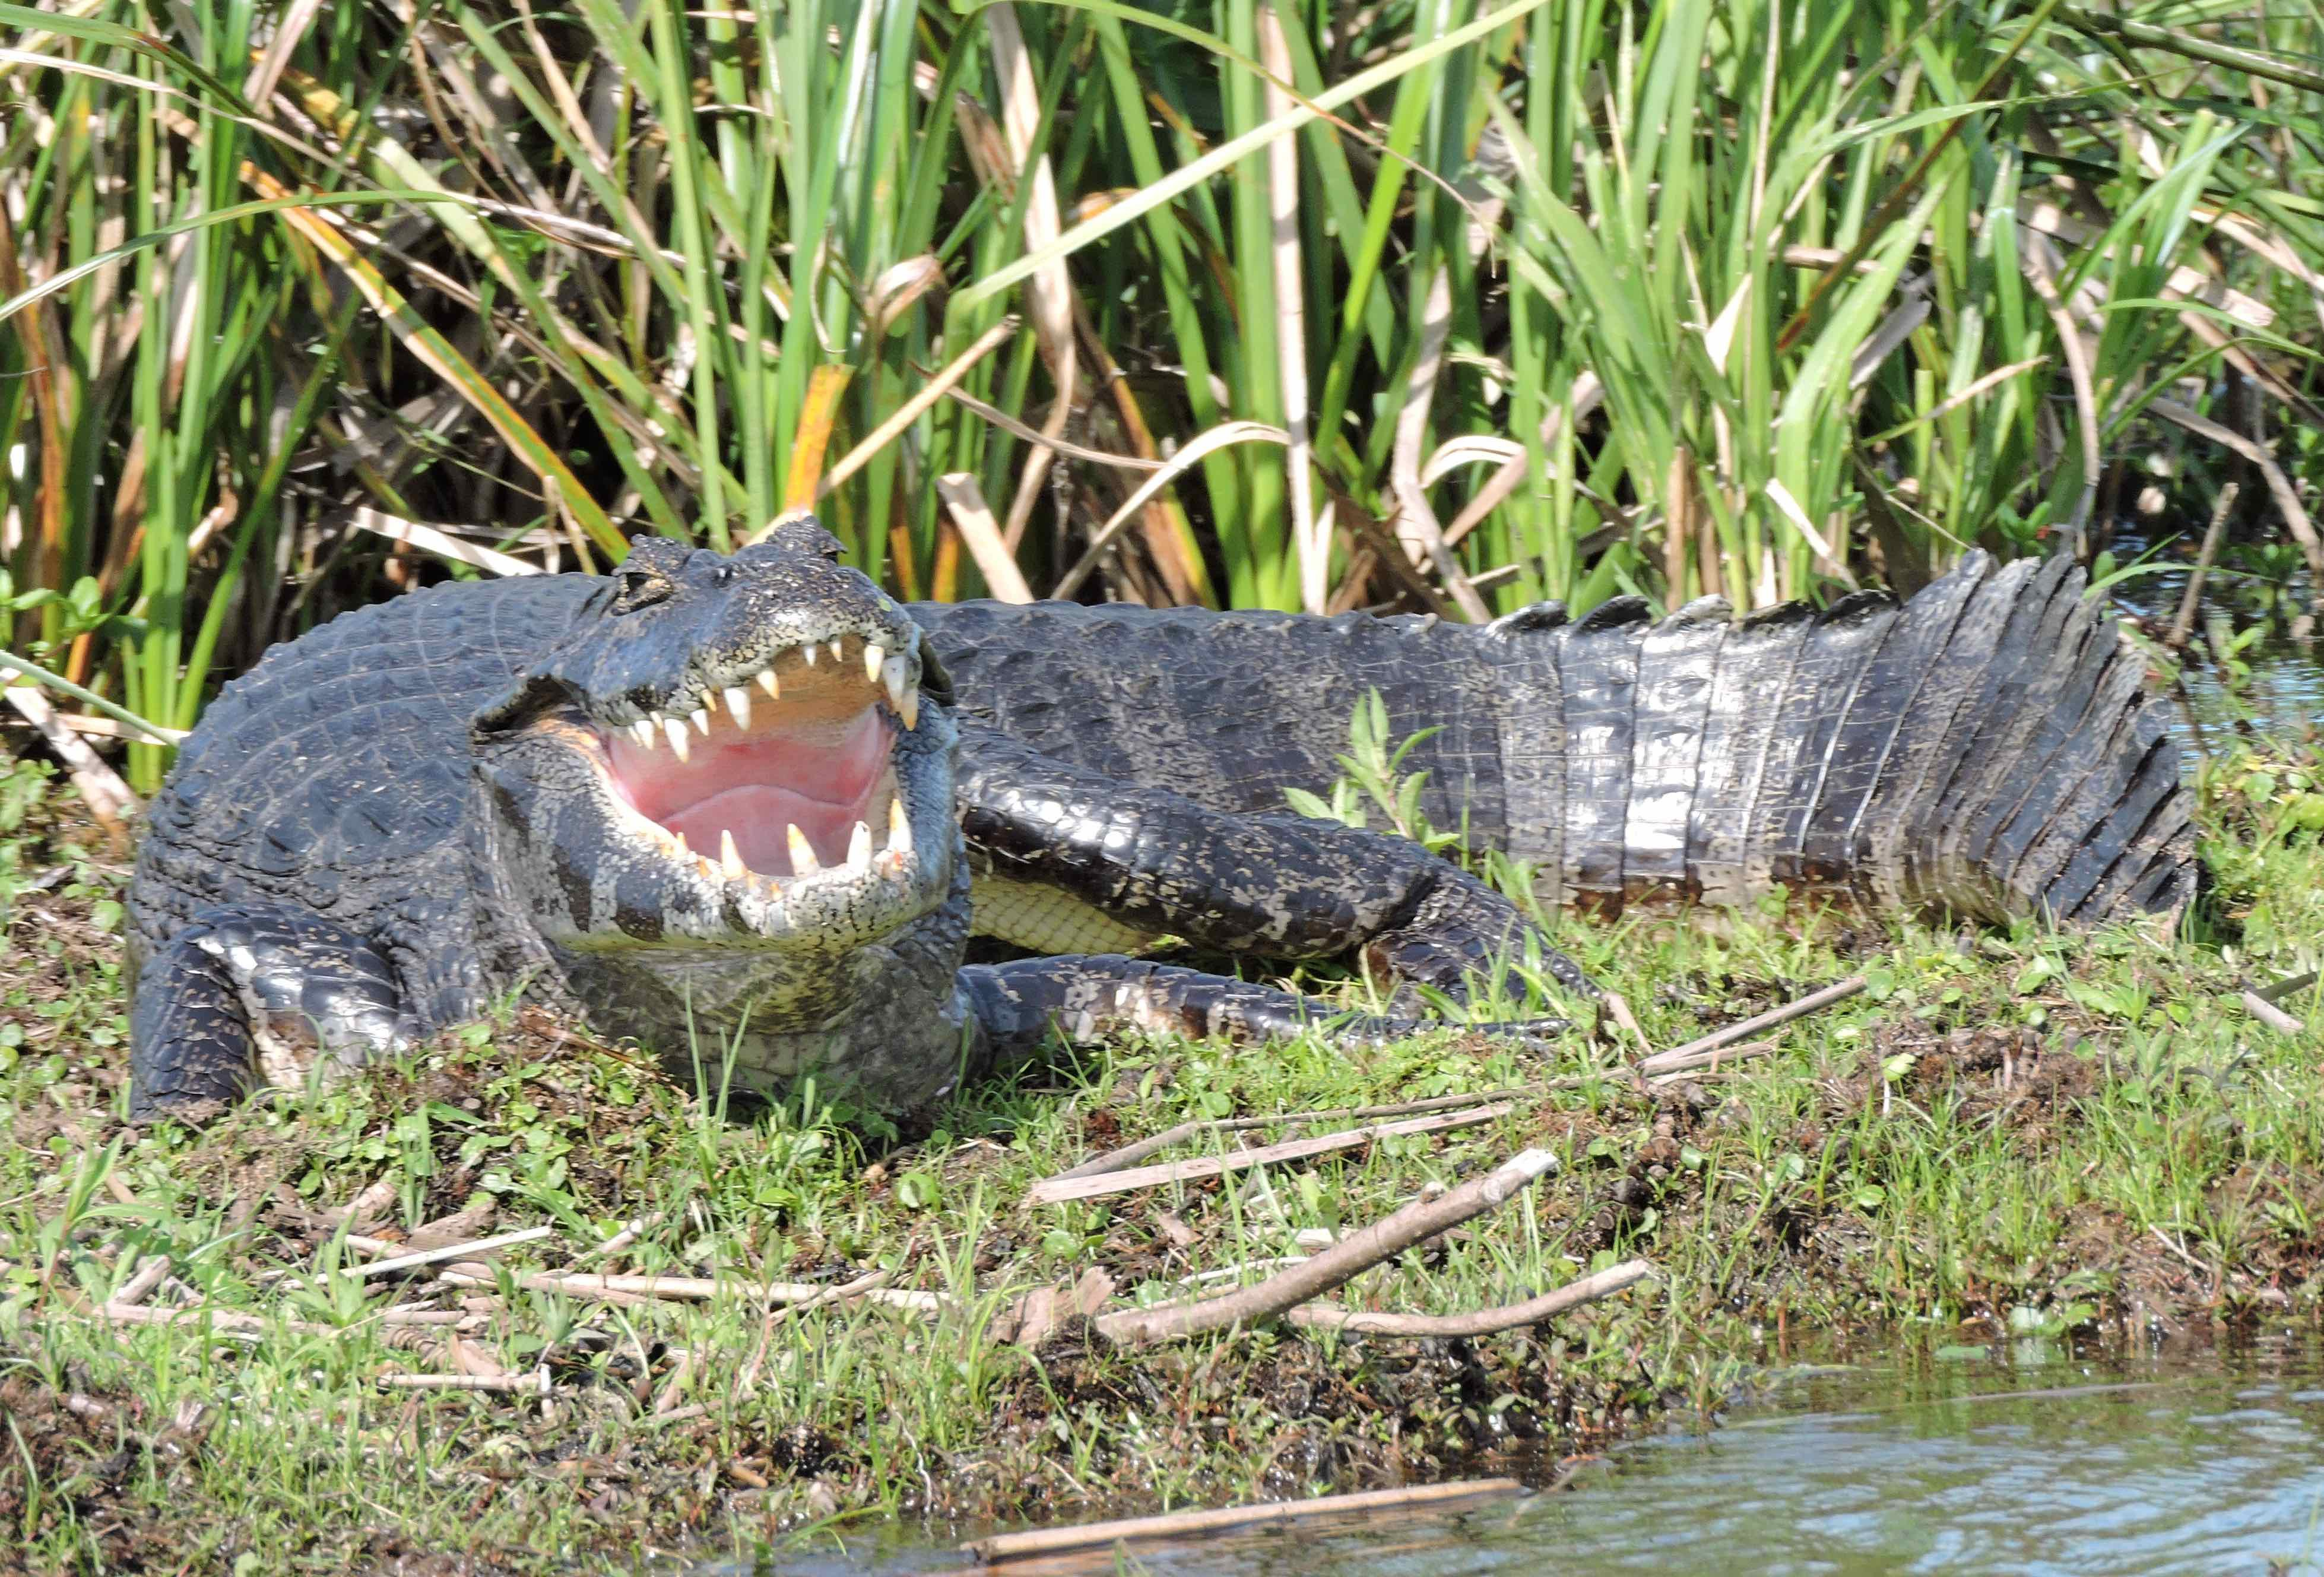 Picture of a Black Caiman Alligator in the jungle